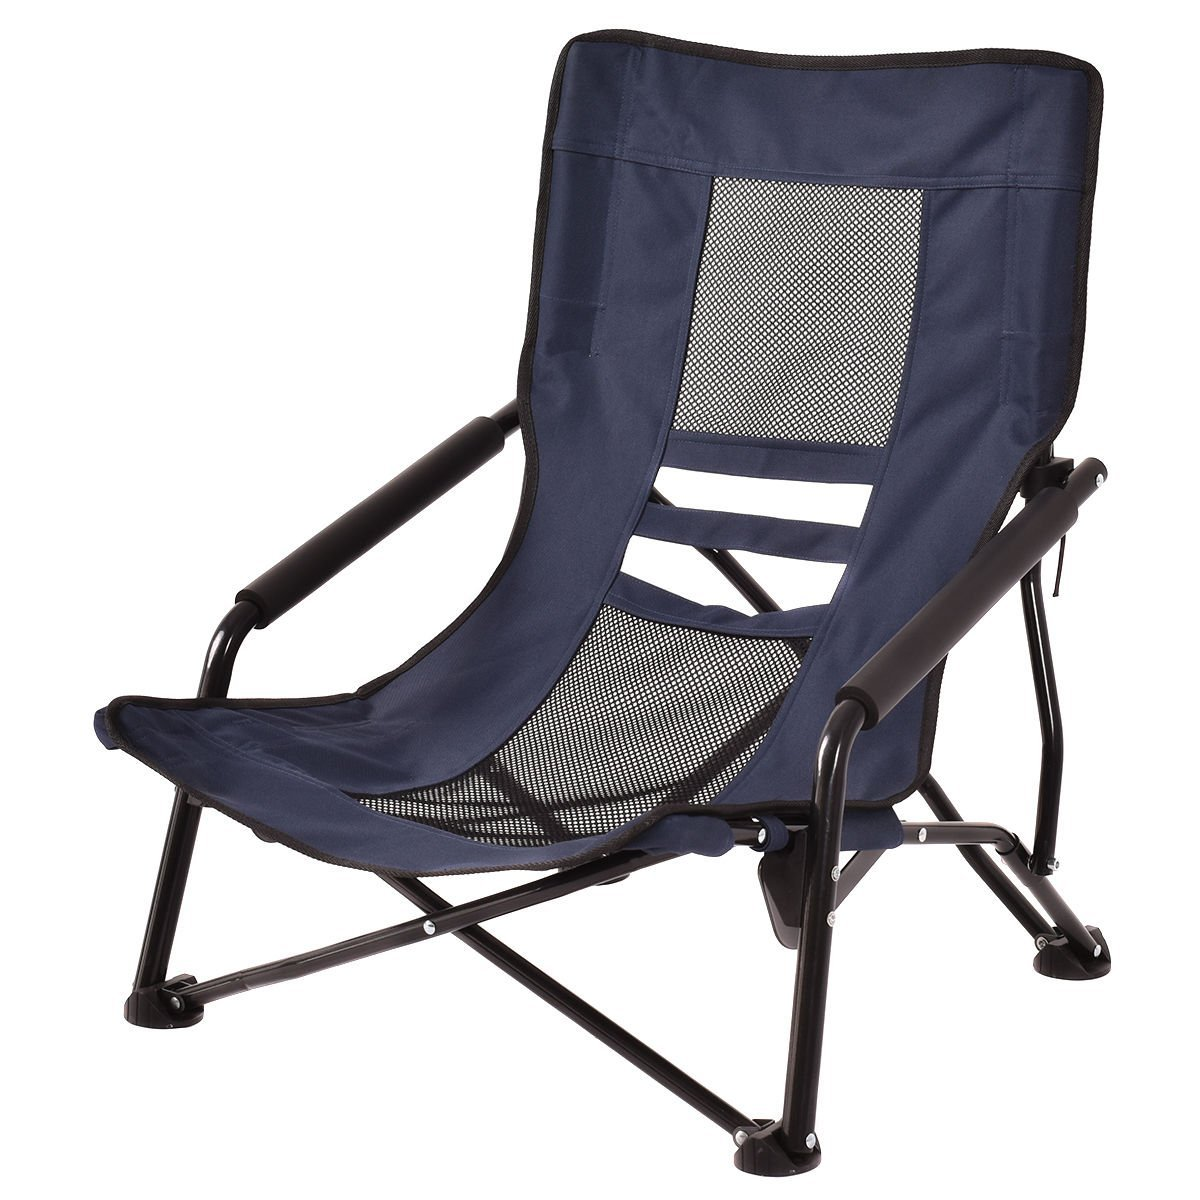 Outdoor High Back Folding Beach Chair Camping Furniture Portable Mesh Seat (Blue) By Giantex